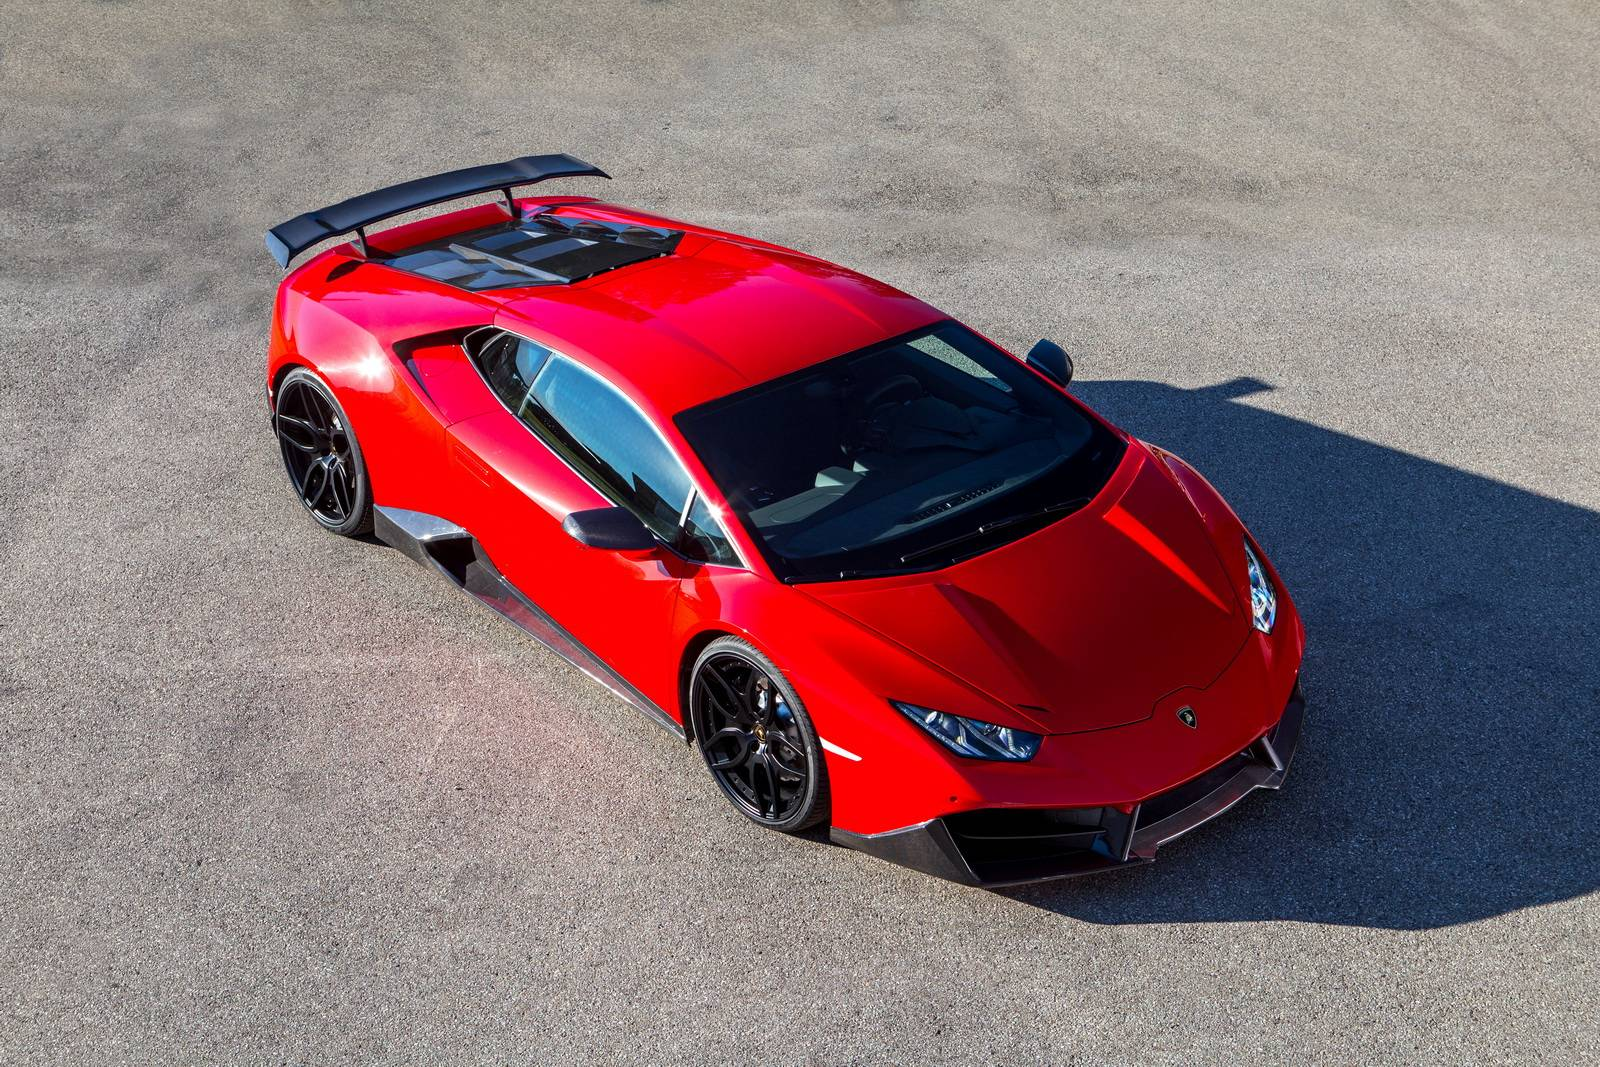 official 830hp novitec torado lamborghini huracan rwd gtspirit. Black Bedroom Furniture Sets. Home Design Ideas